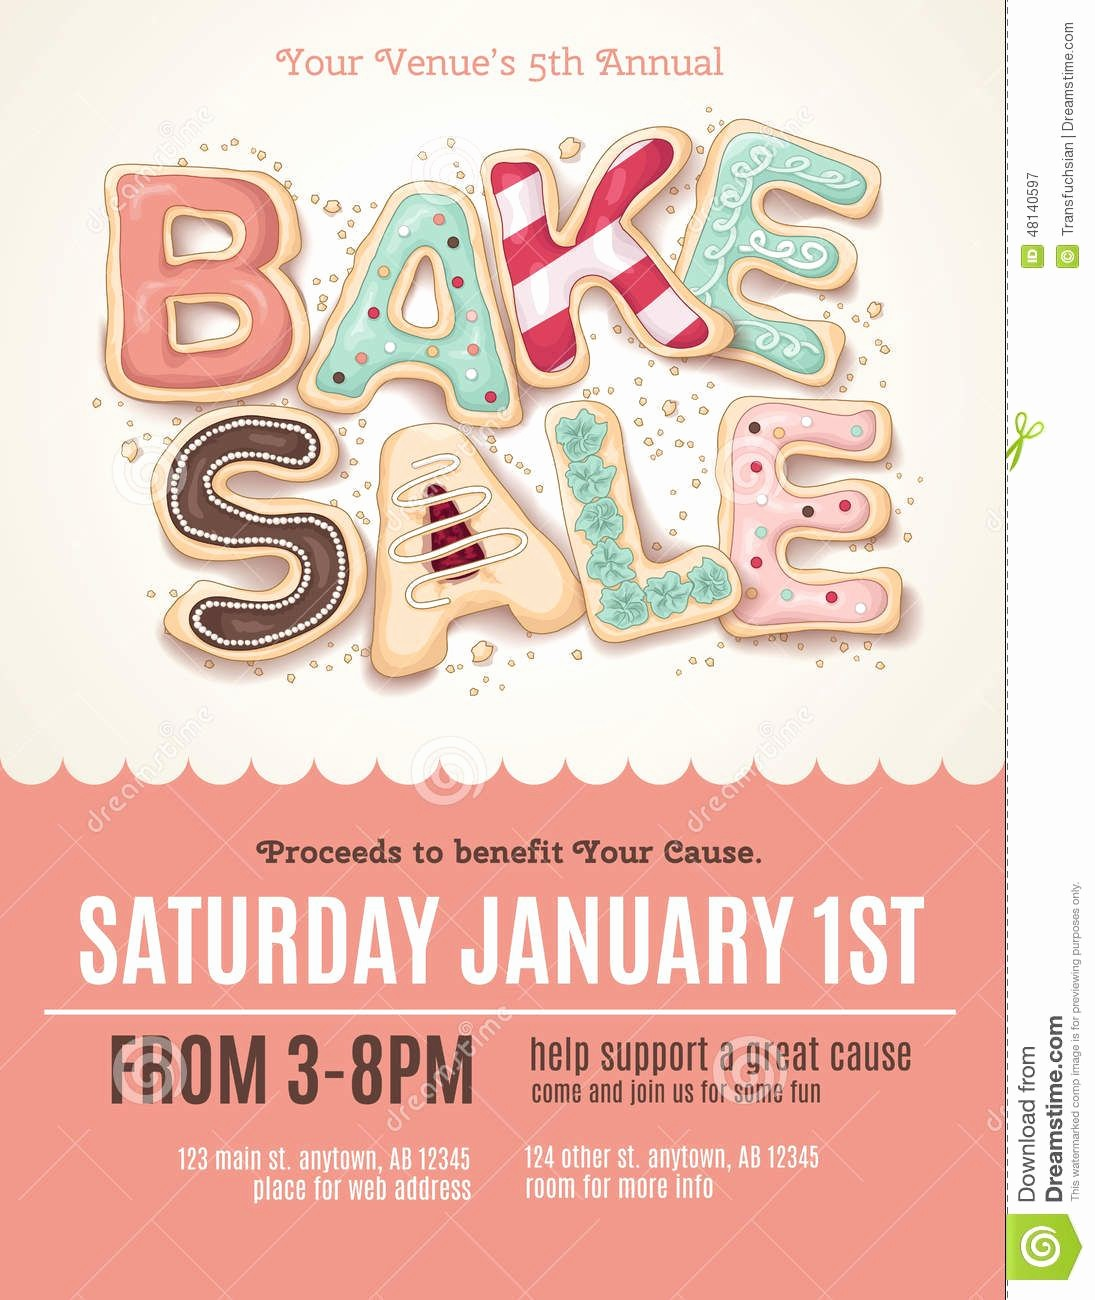 Bake Sale Flyer Template Word Unique Fun Cookie Bake Sale Flyer Template Download From Over